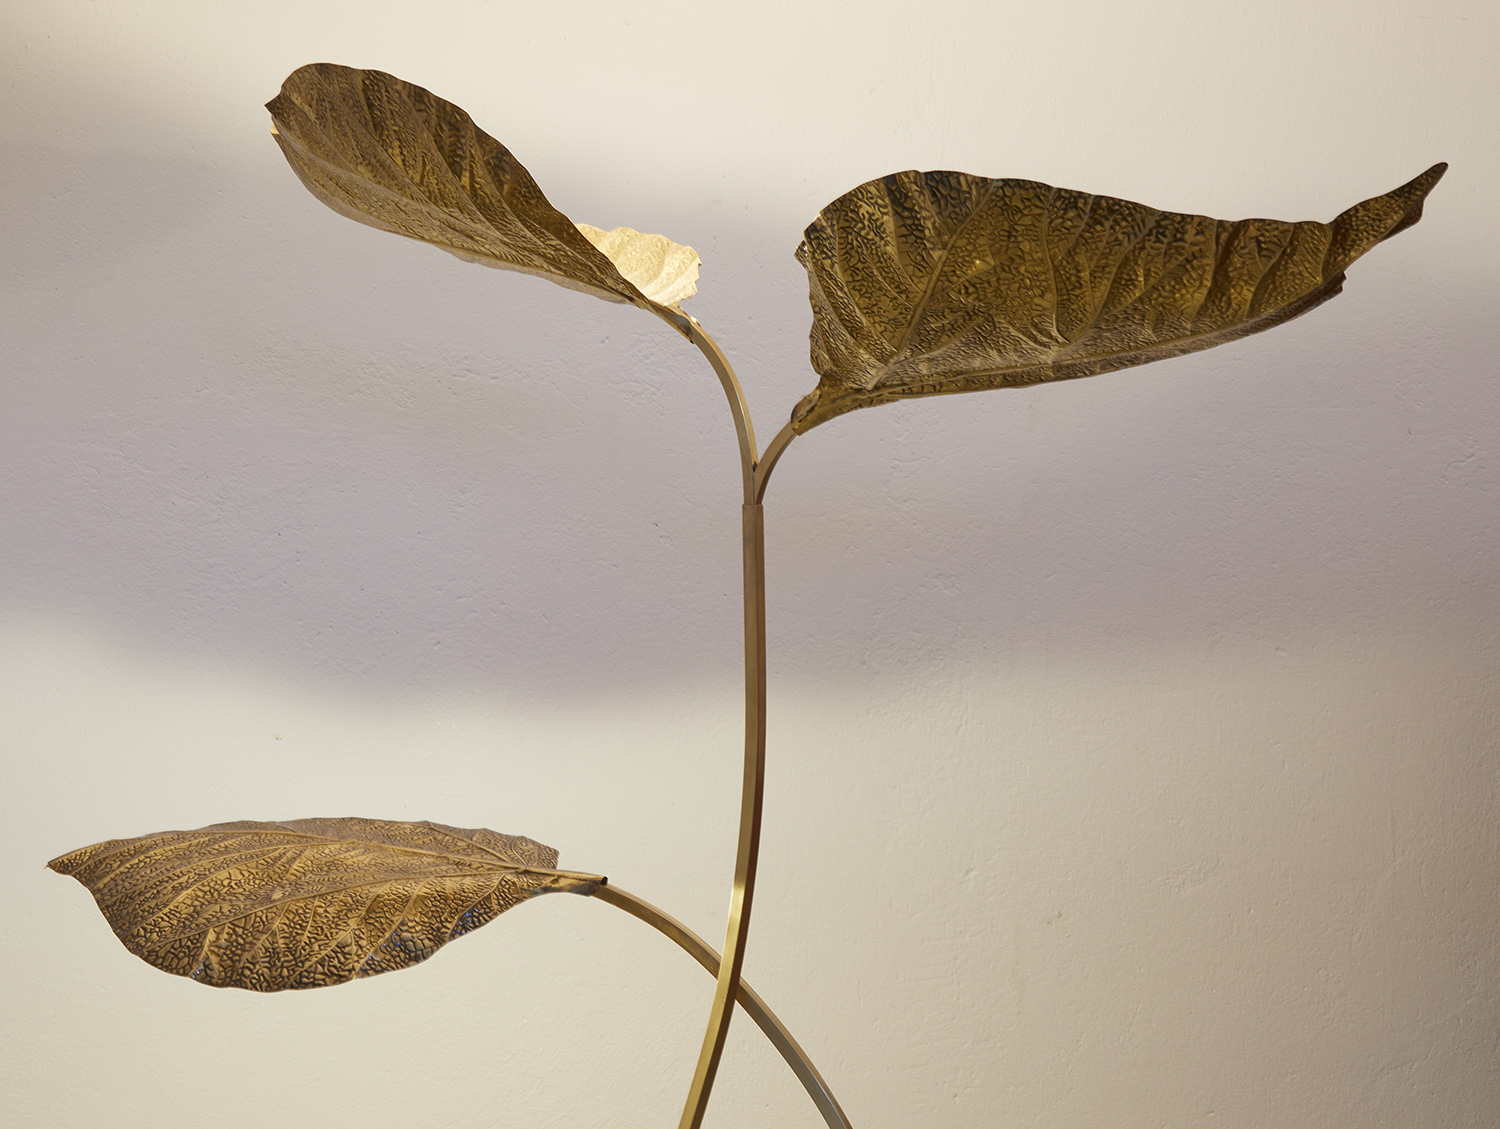 carlo-giorgi-brass-floor-lamp-with-three-leaves-for-bottega-gadda-italy-1970-image-12